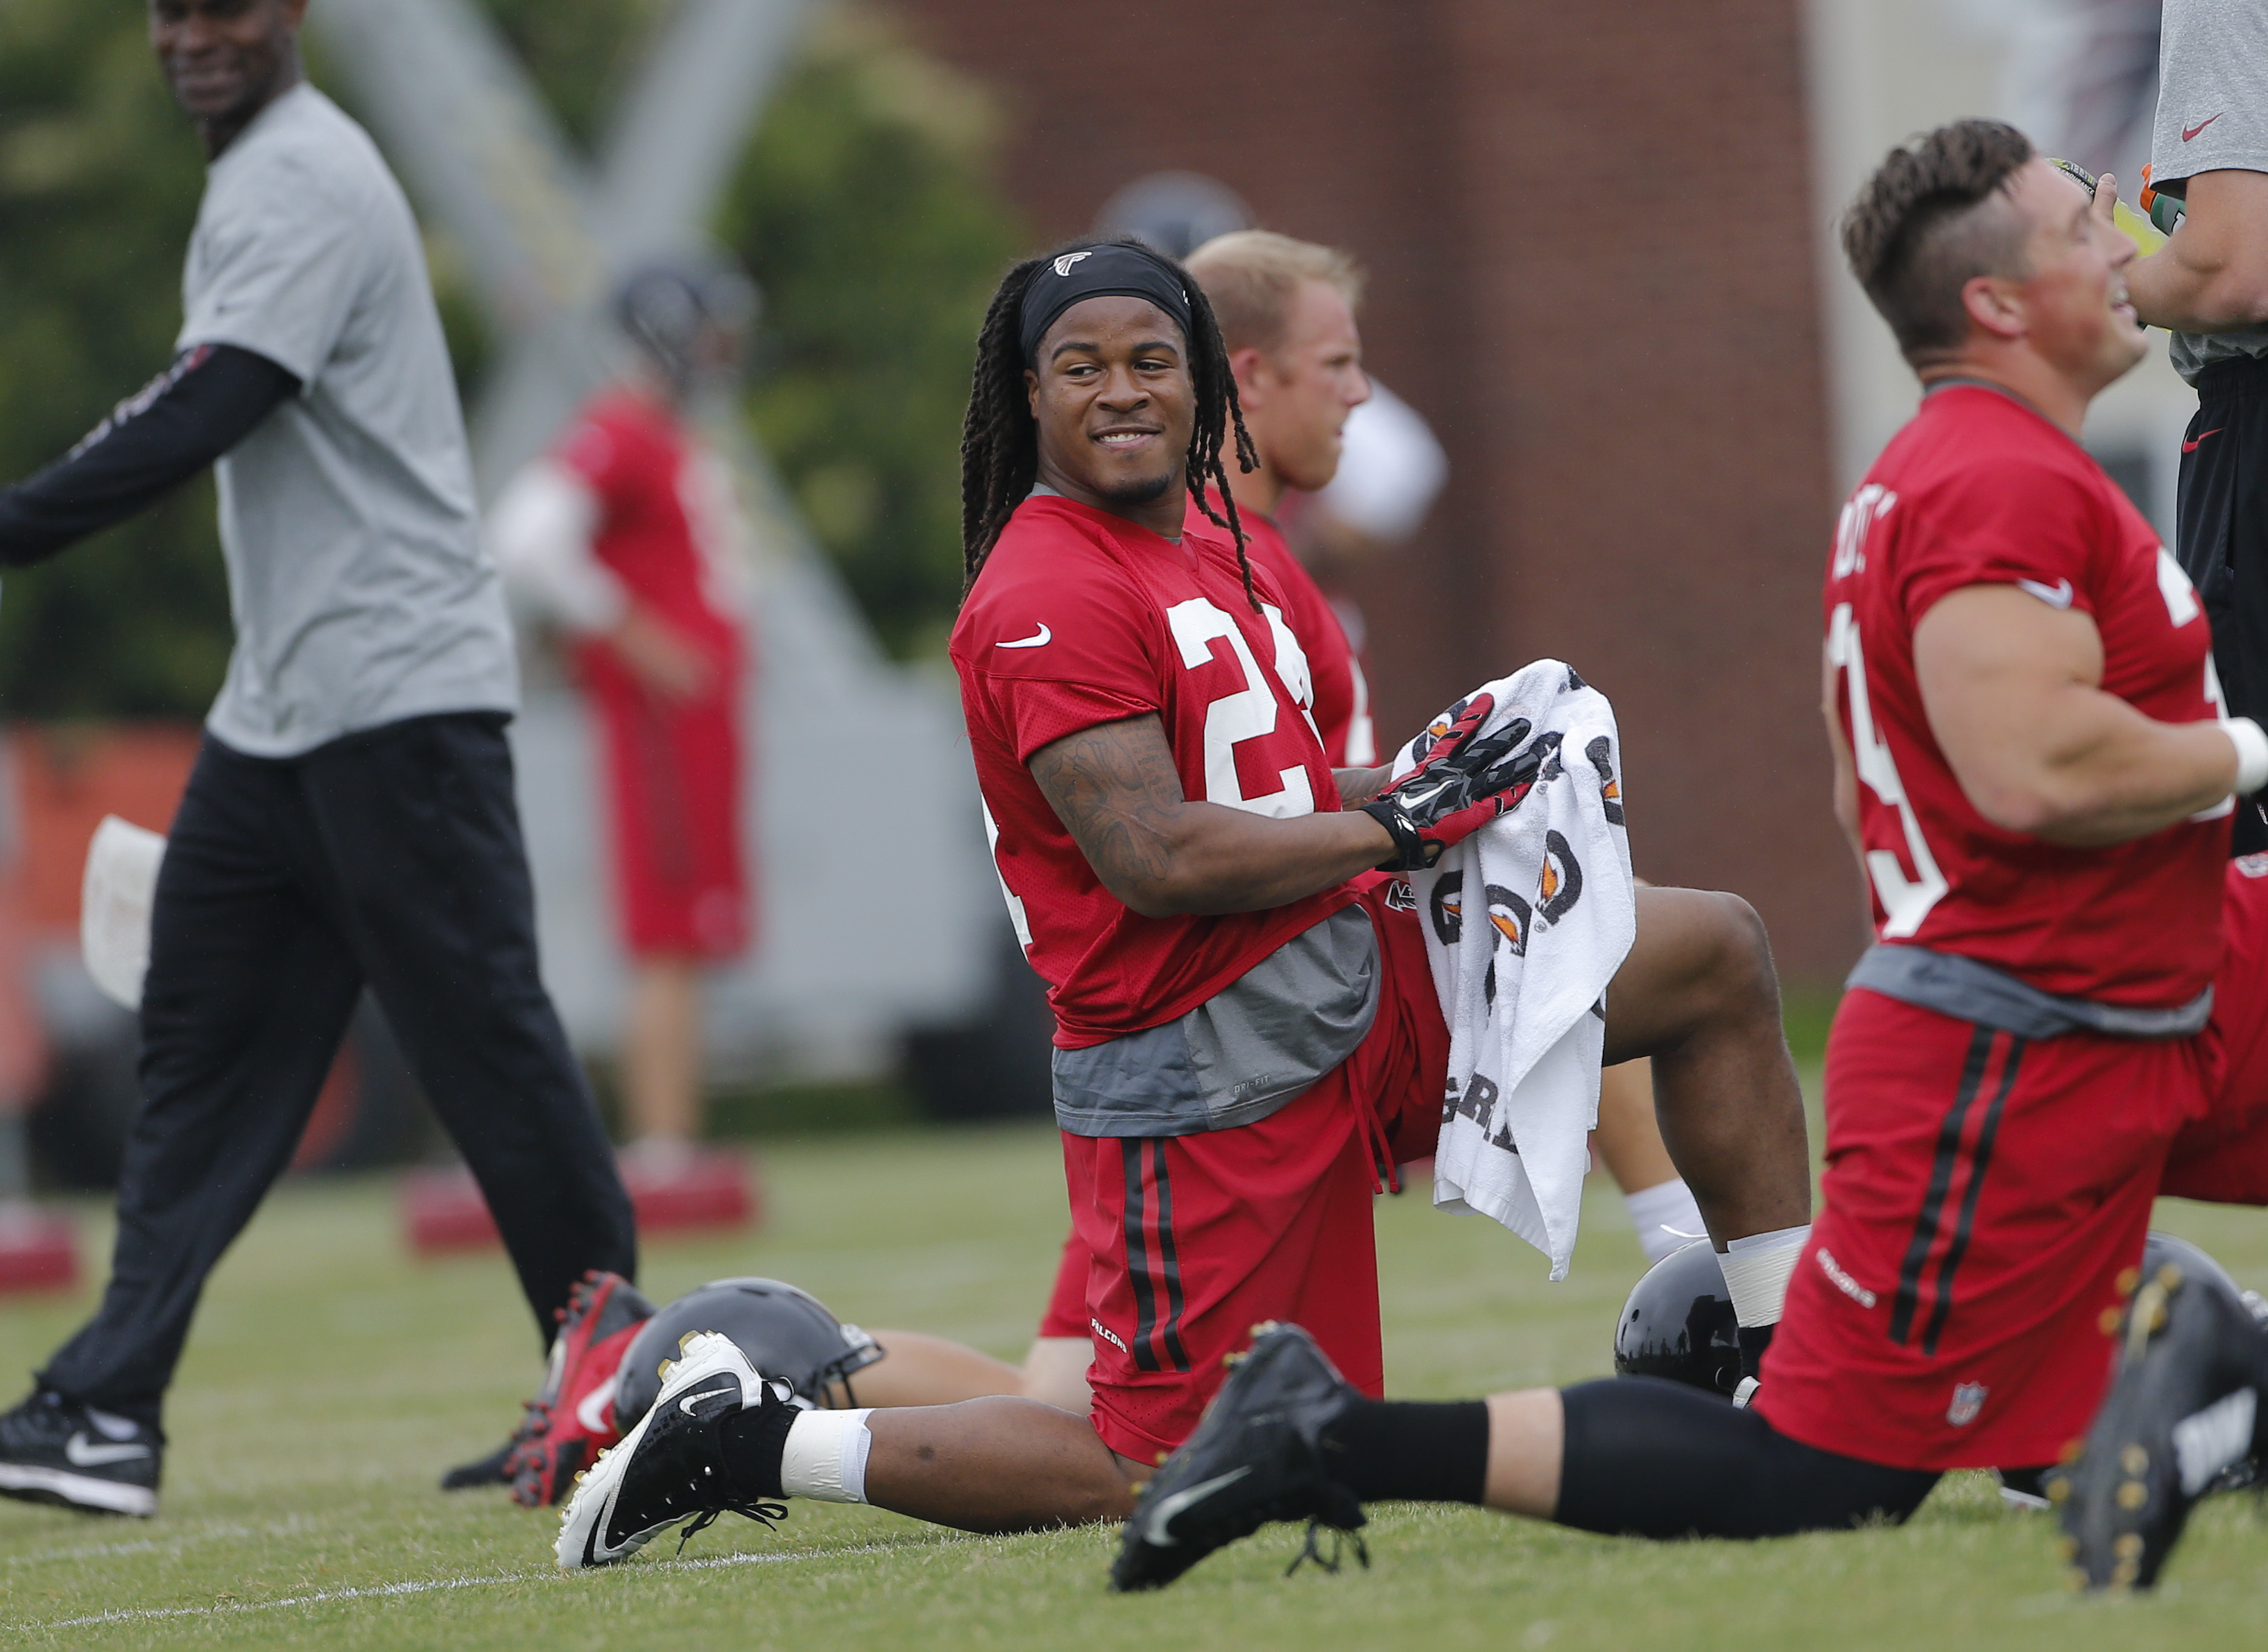 Atlanta Falcons running back Devonta Freeman (24) stretches during an offseason NFL football  training session Tuesday, May 26, 2015, in Flowery Branch, Ga.  (AP Photo/John Bazemore)